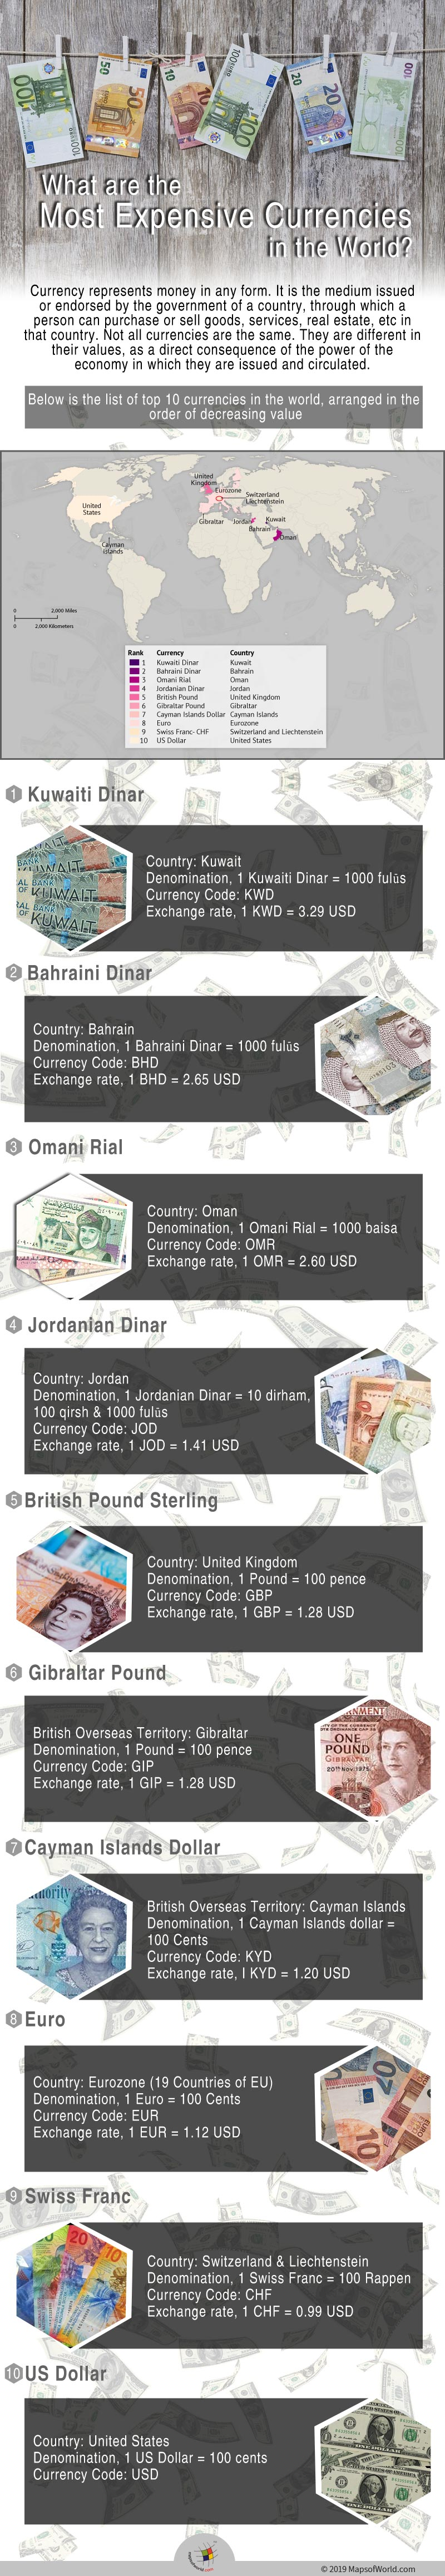 Infographic Giving Details on the Most Expensive Currencies in the World